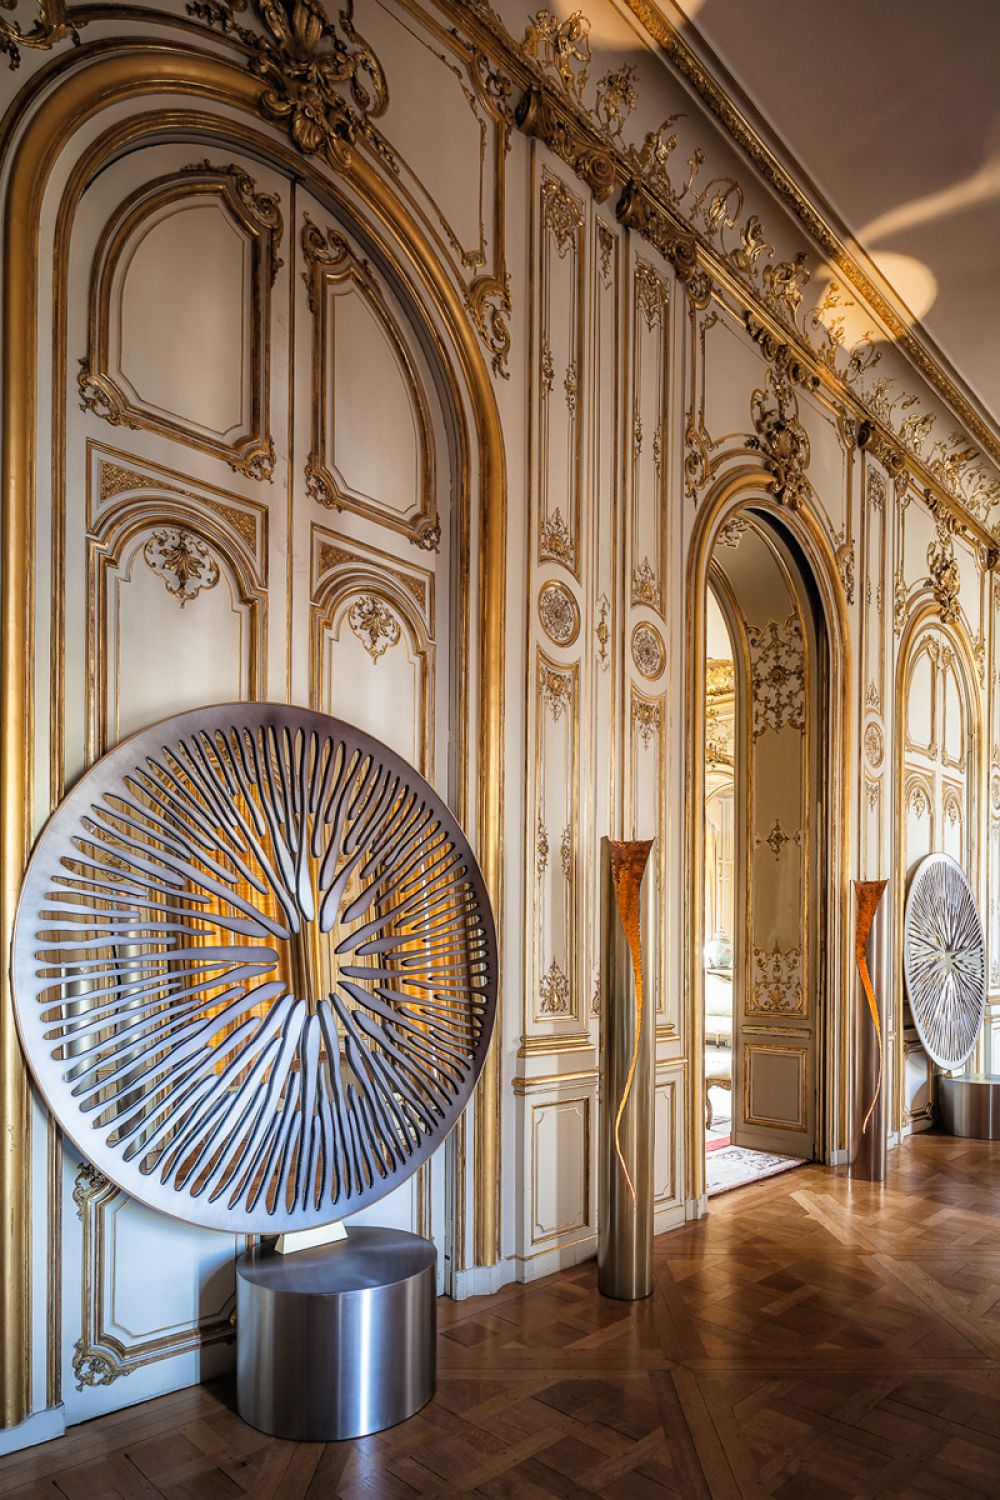 Installation at the Italian Embassy in Paris - 2014